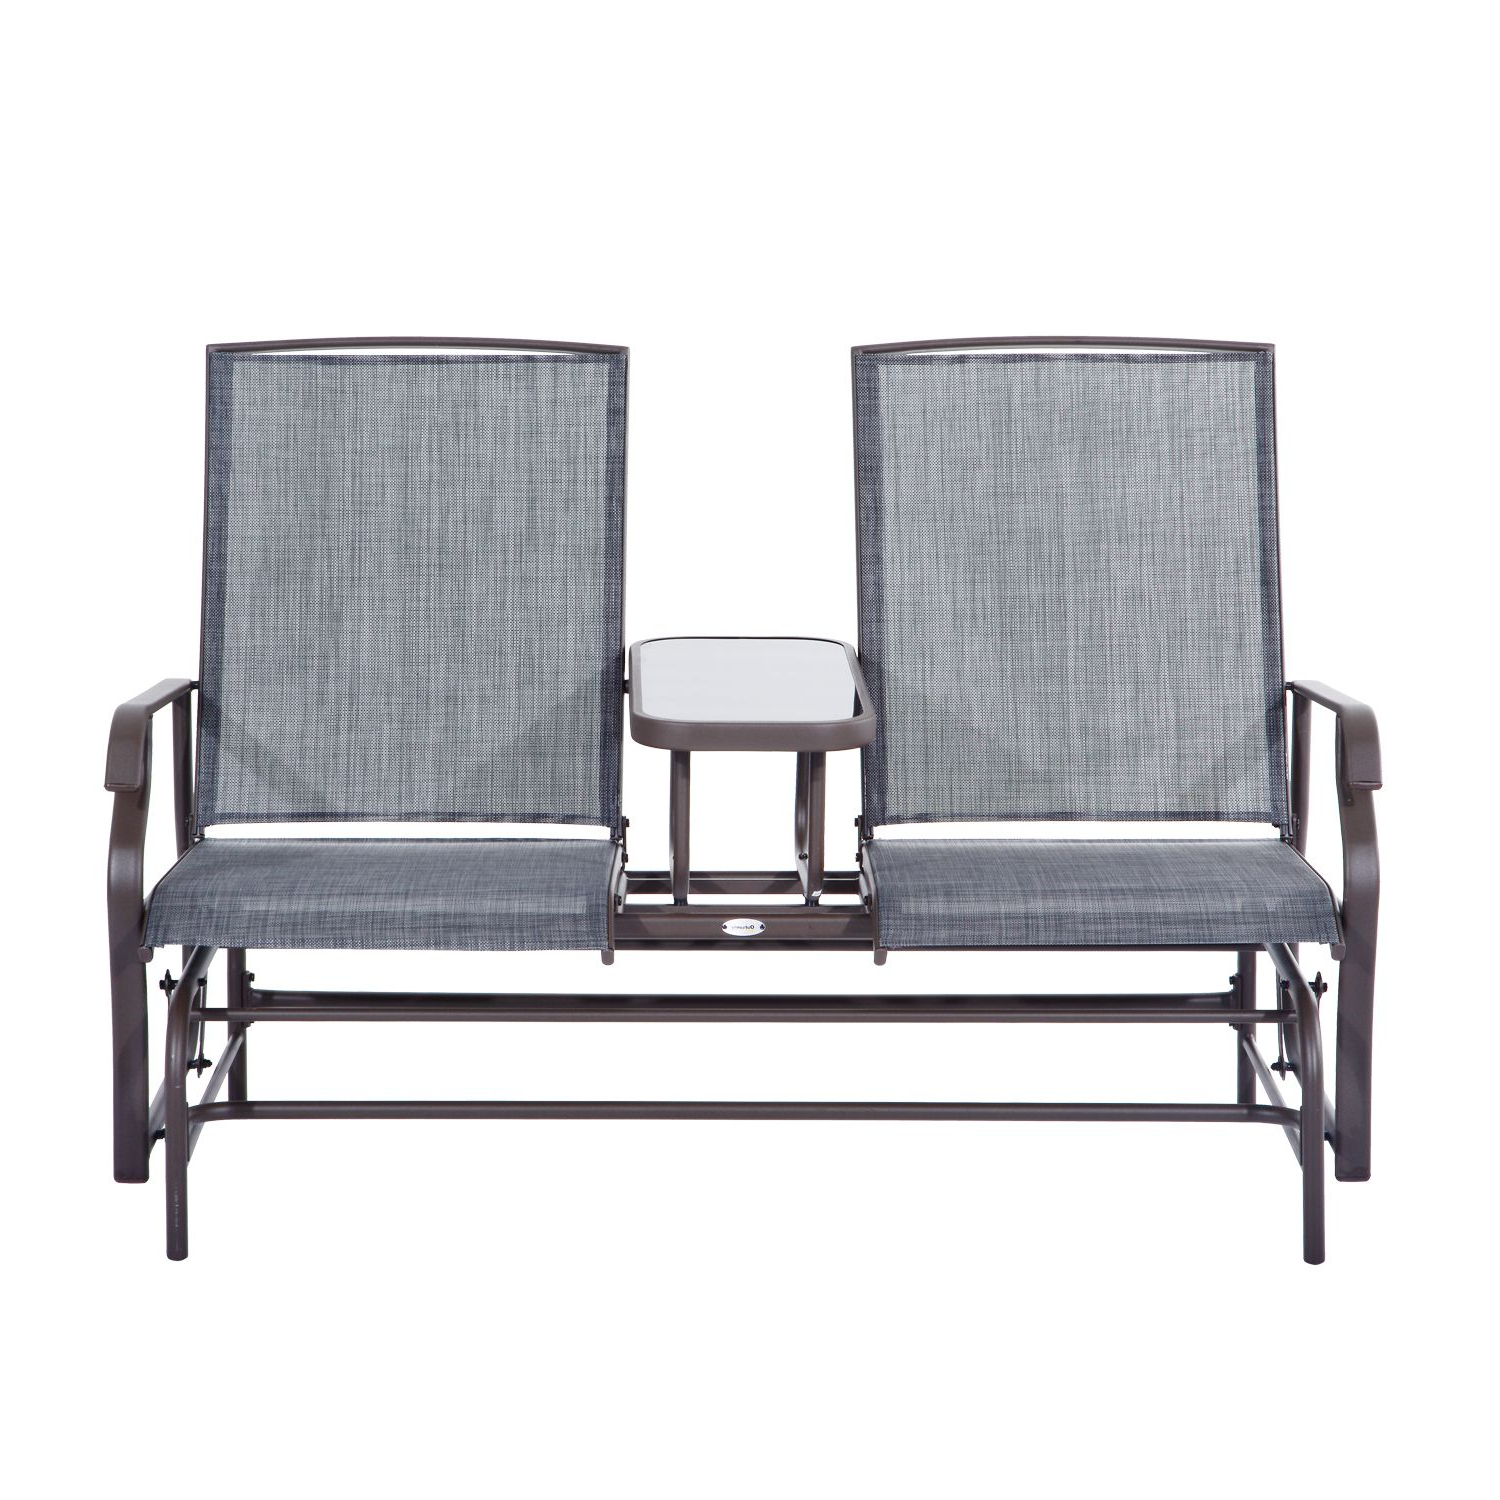 Outsunny Patio Glider Rocking Chair 2 Person Outdoor Loveseat Rocker Garden Furniture Bench Pertaining To Famous Double Glider Benches With Cushion (View 22 of 30)